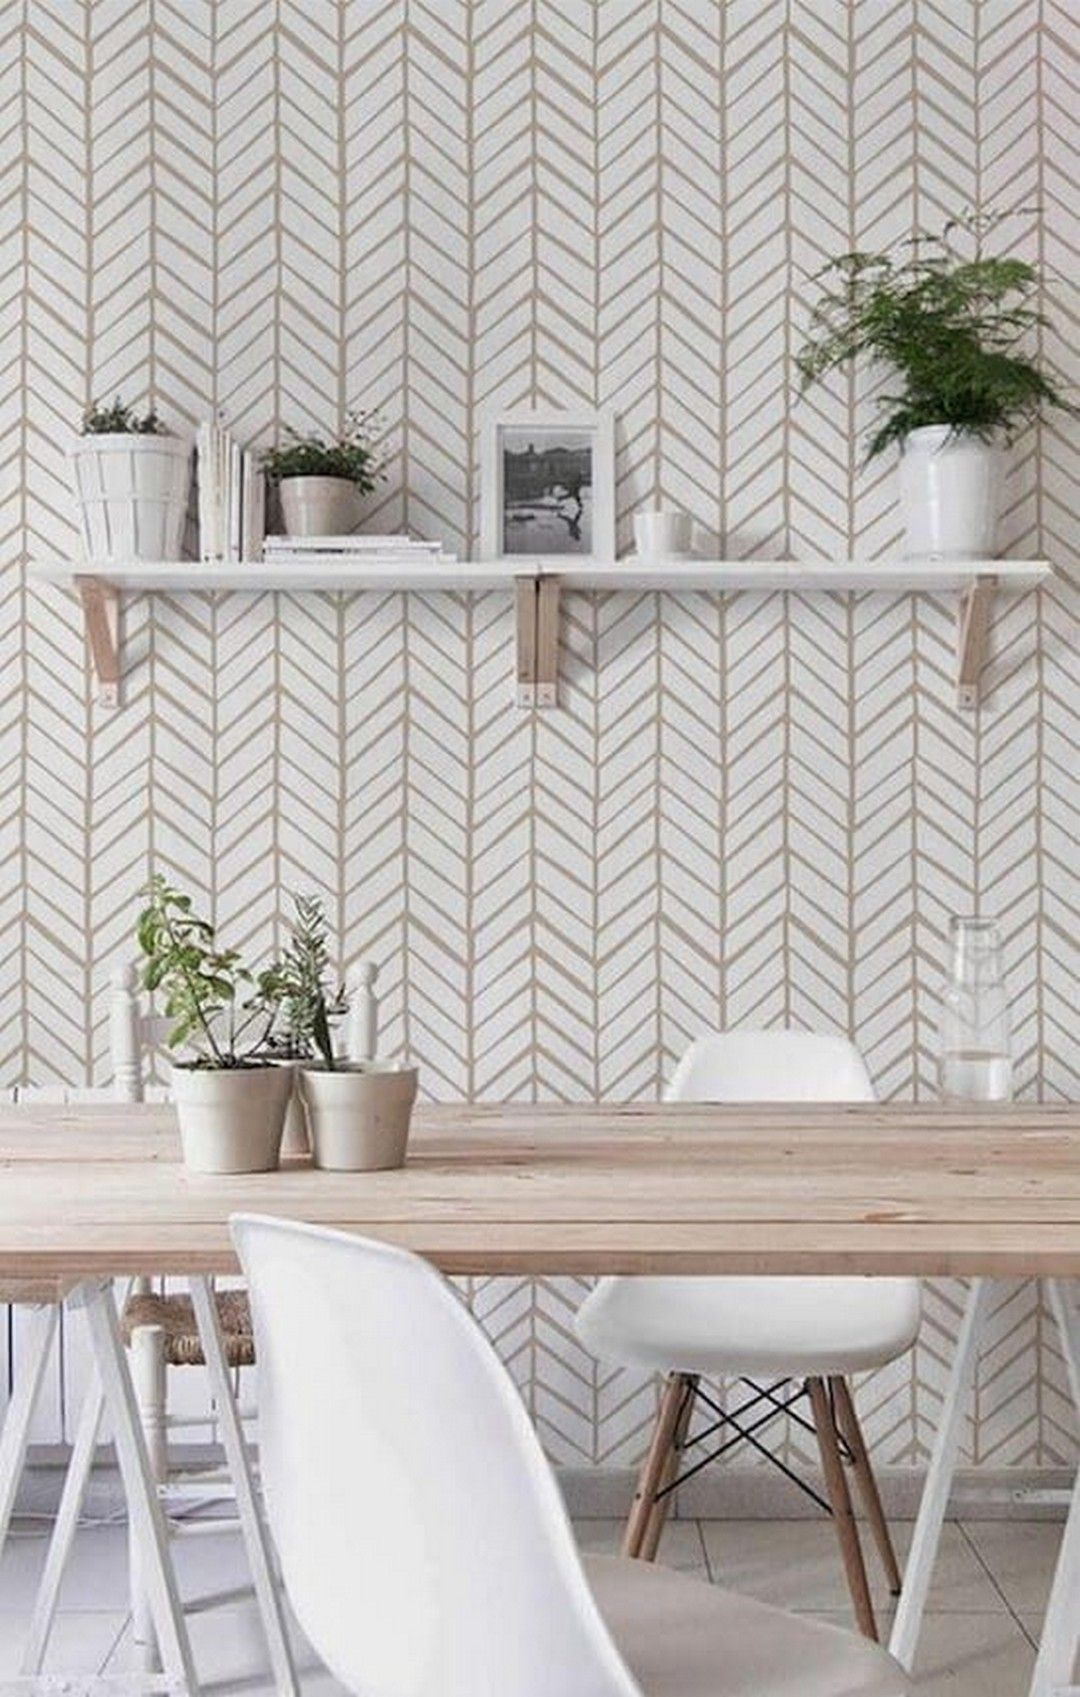 Room Design Wallpaper Ideas To Match Your Minimalist Room Goodnewsarchitecture Scandinavian Design Living Room Minimalist Dining Room Scandinavian Dining Room